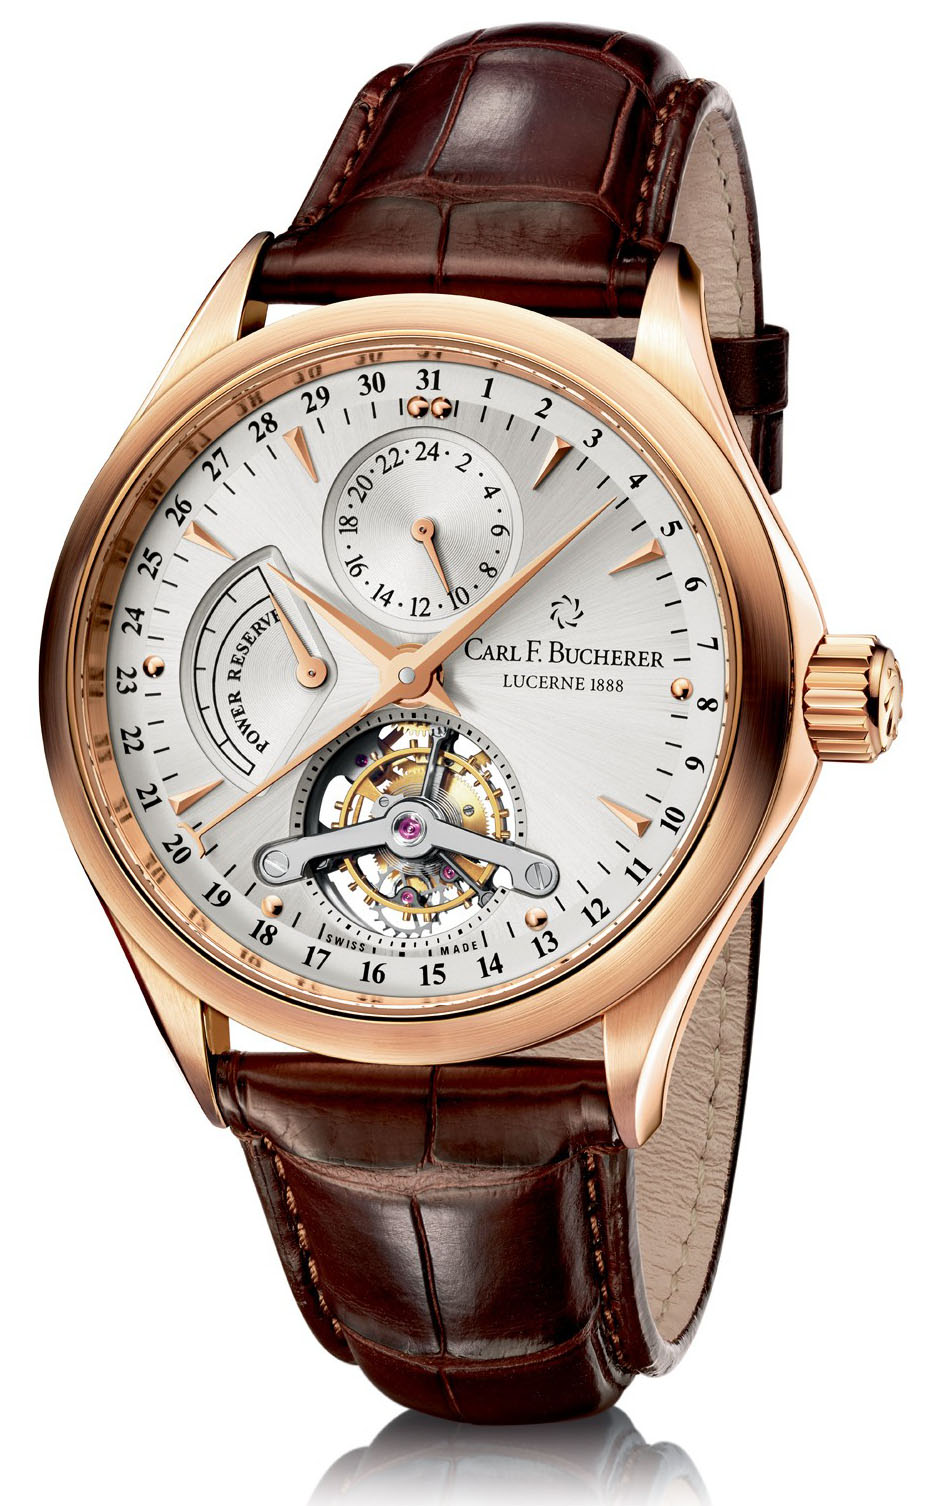 Carl F. Bucherer Manero Tourbillon - Limited Edition